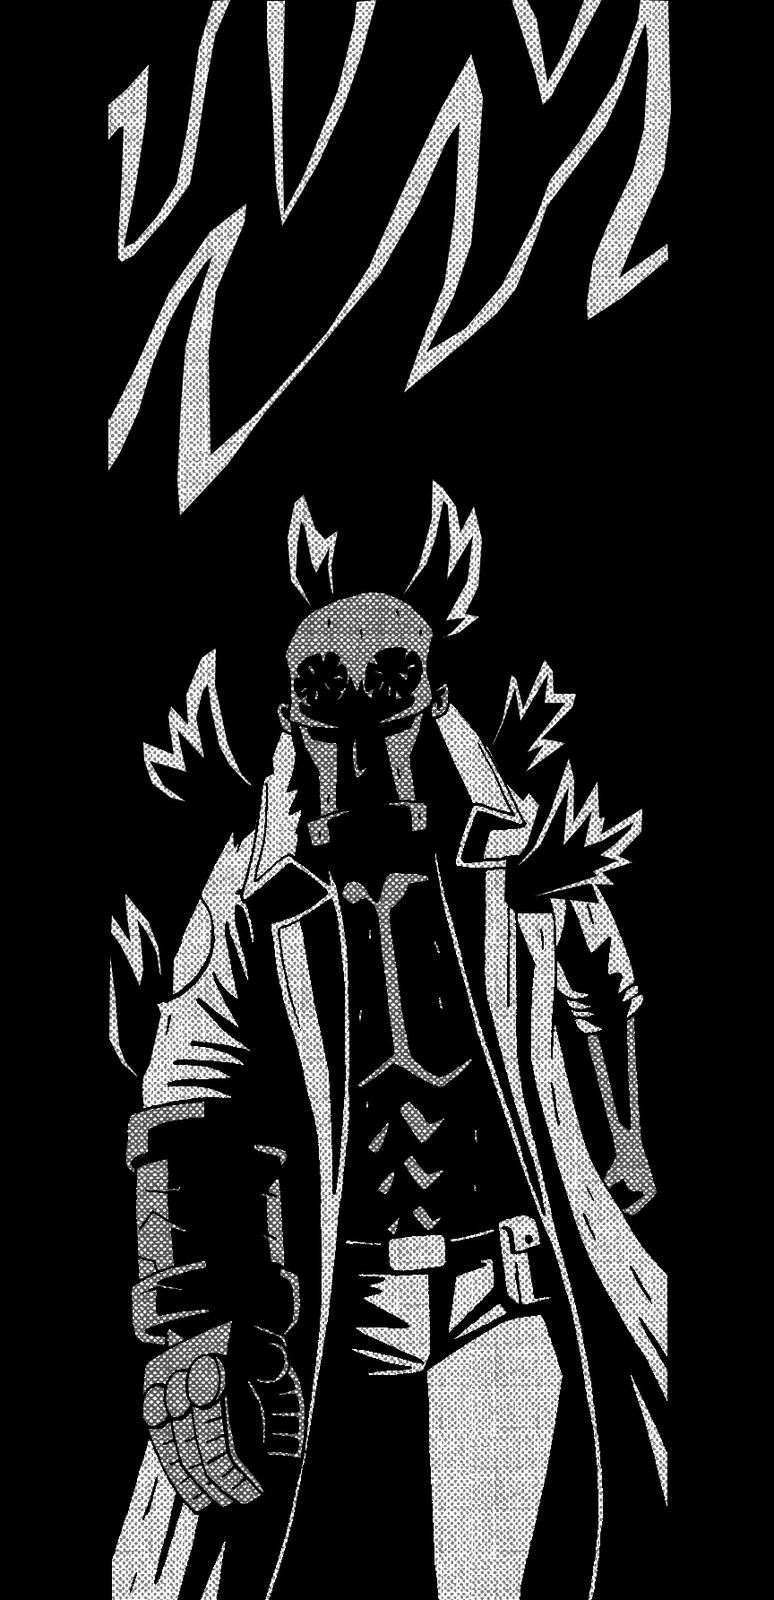 DOODLERNOIR-Hellboy-copie-1.jpg